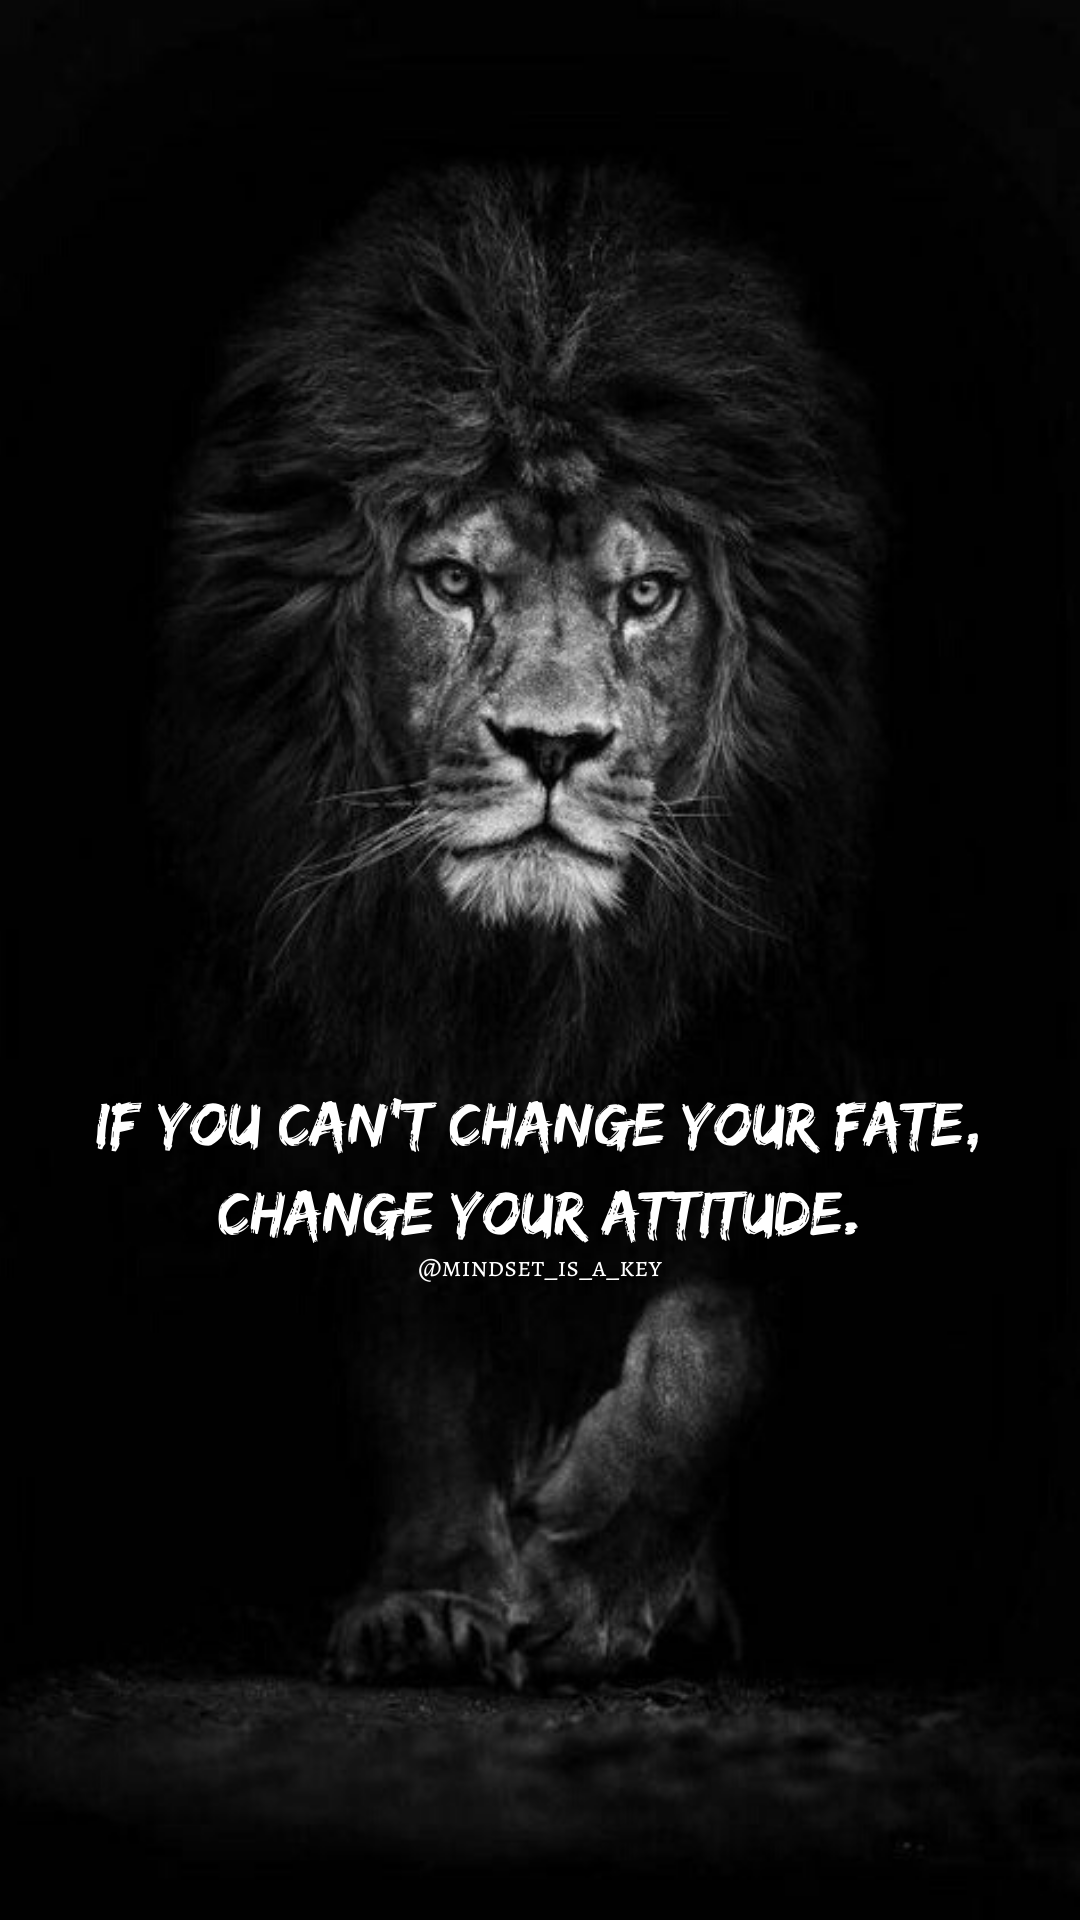 [Image] Attitude is the key